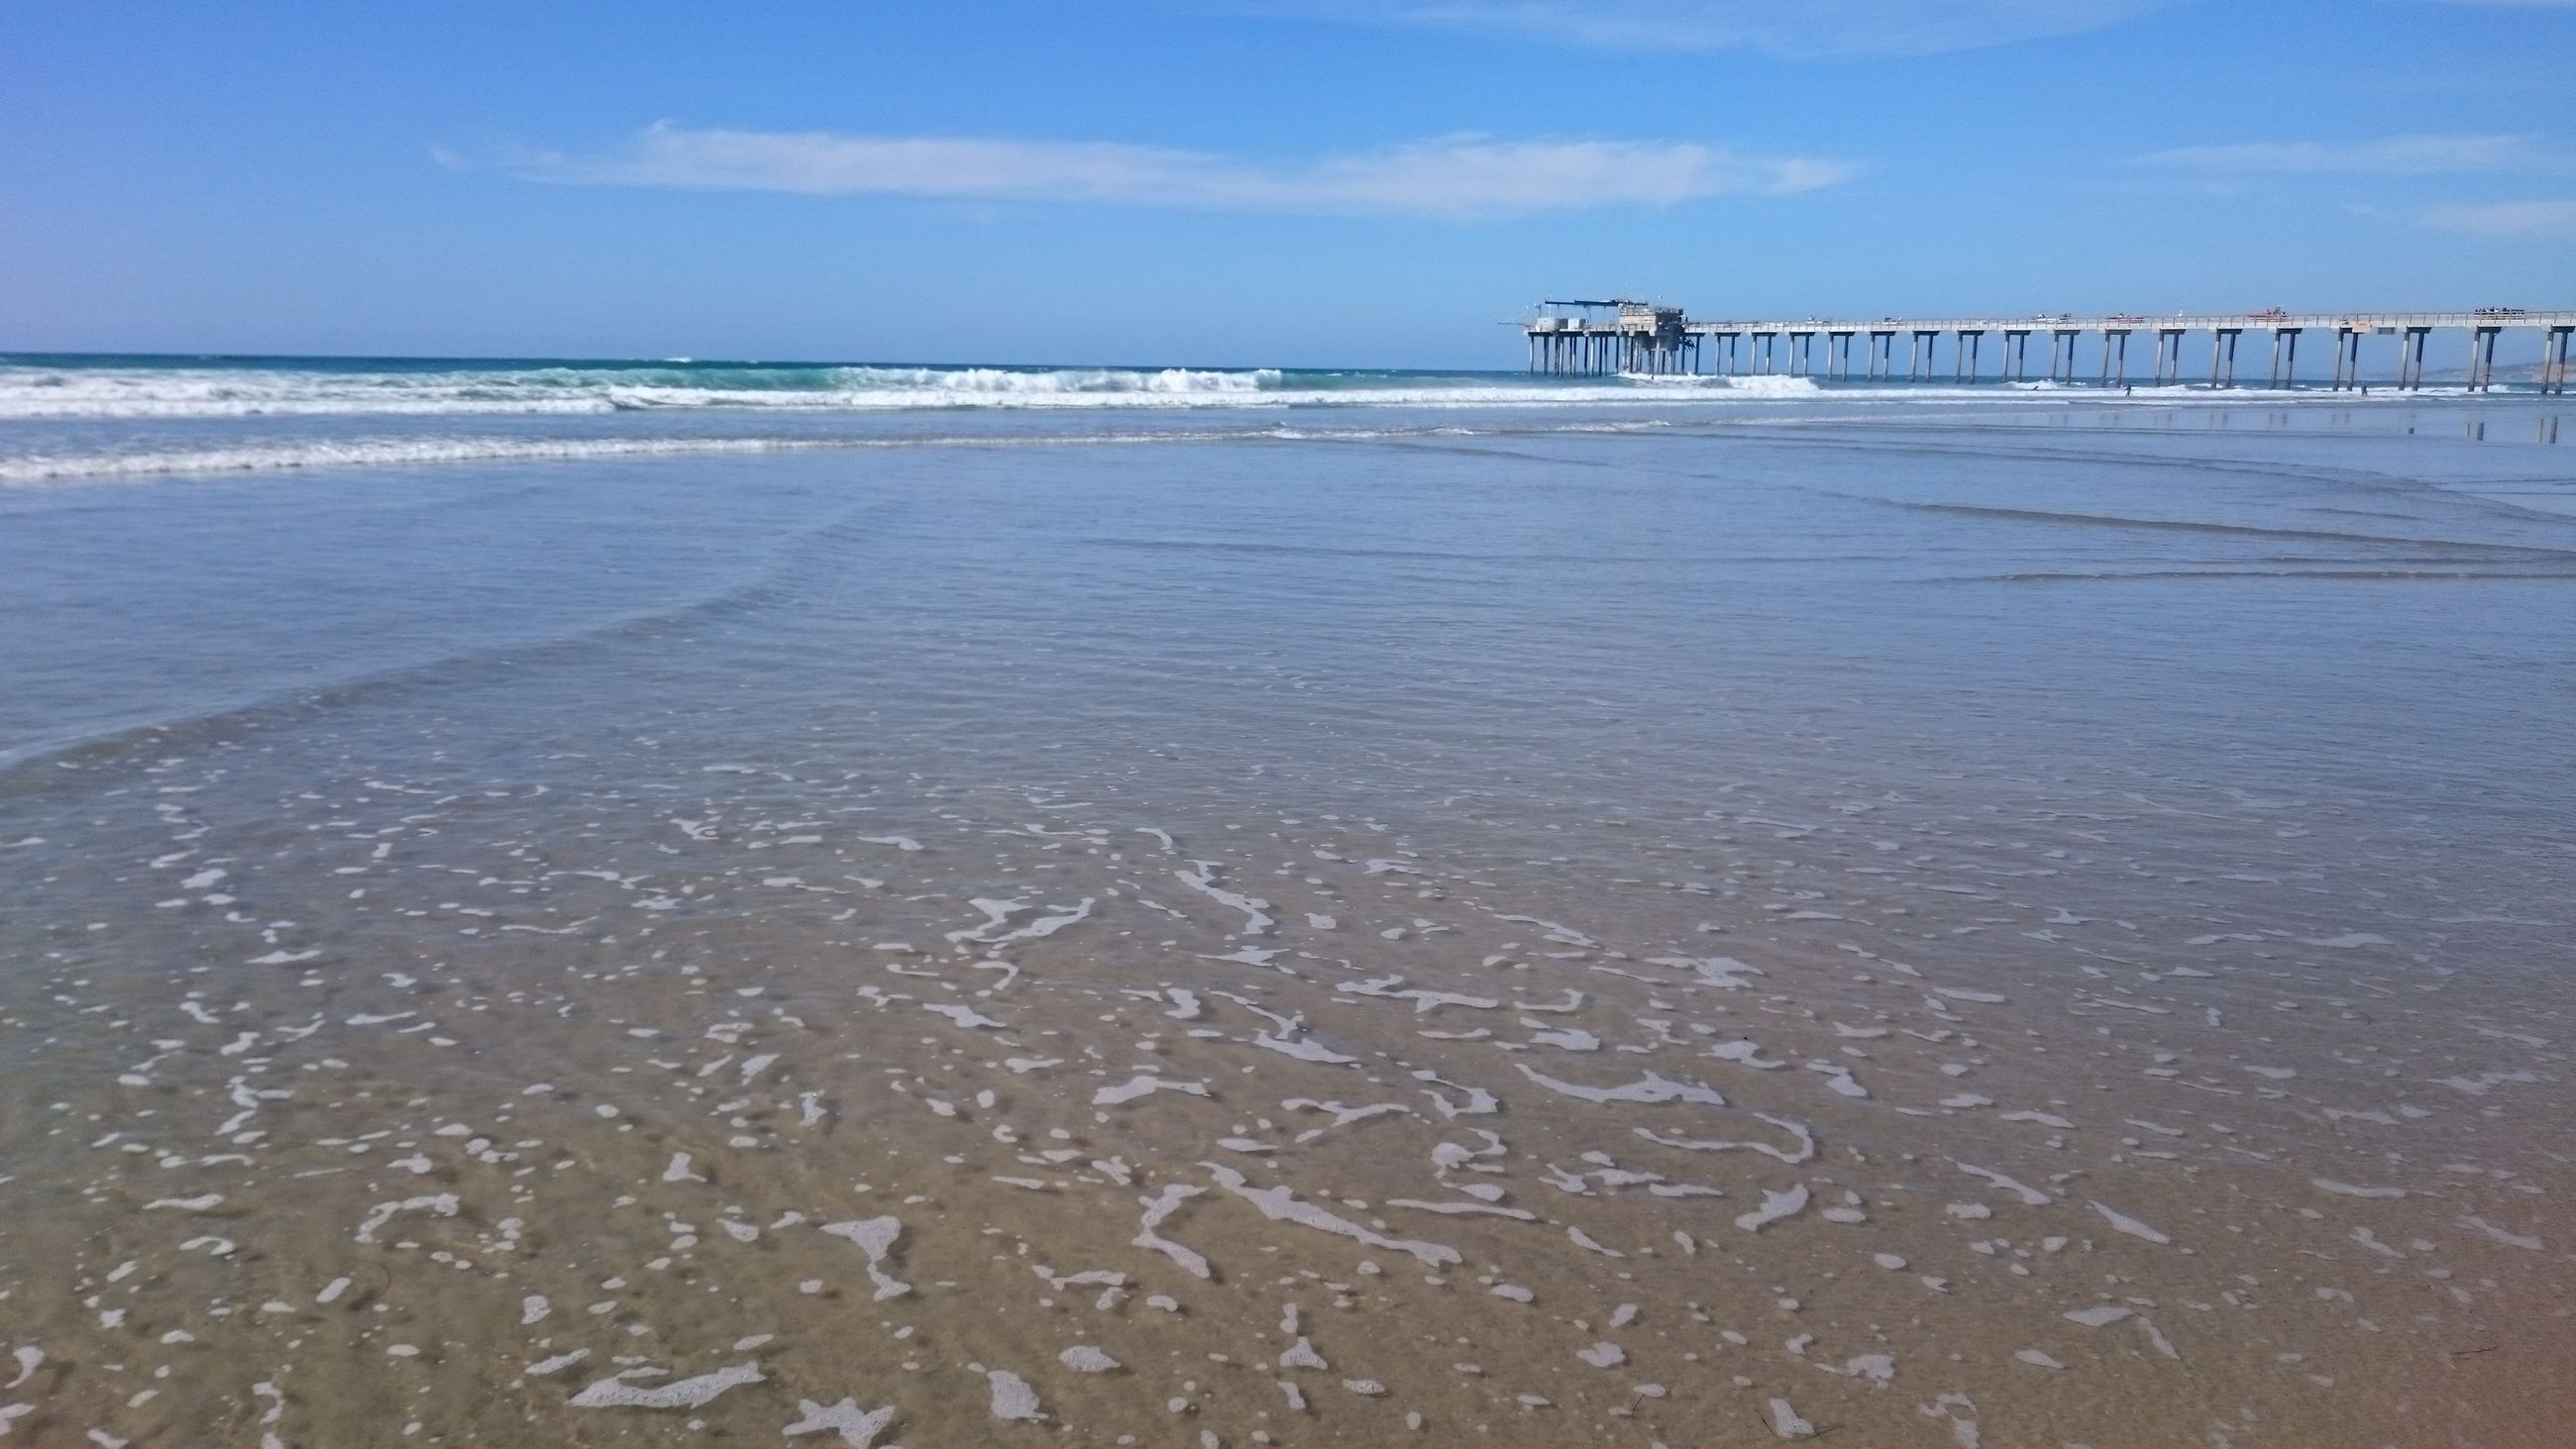 sea, water, horizon over water, beach, sky, tranquility, tranquil scene, shore, scenics, sand, beauty in nature, nature, pier, wave, idyllic, seascape, blue, outdoors, day, ocean